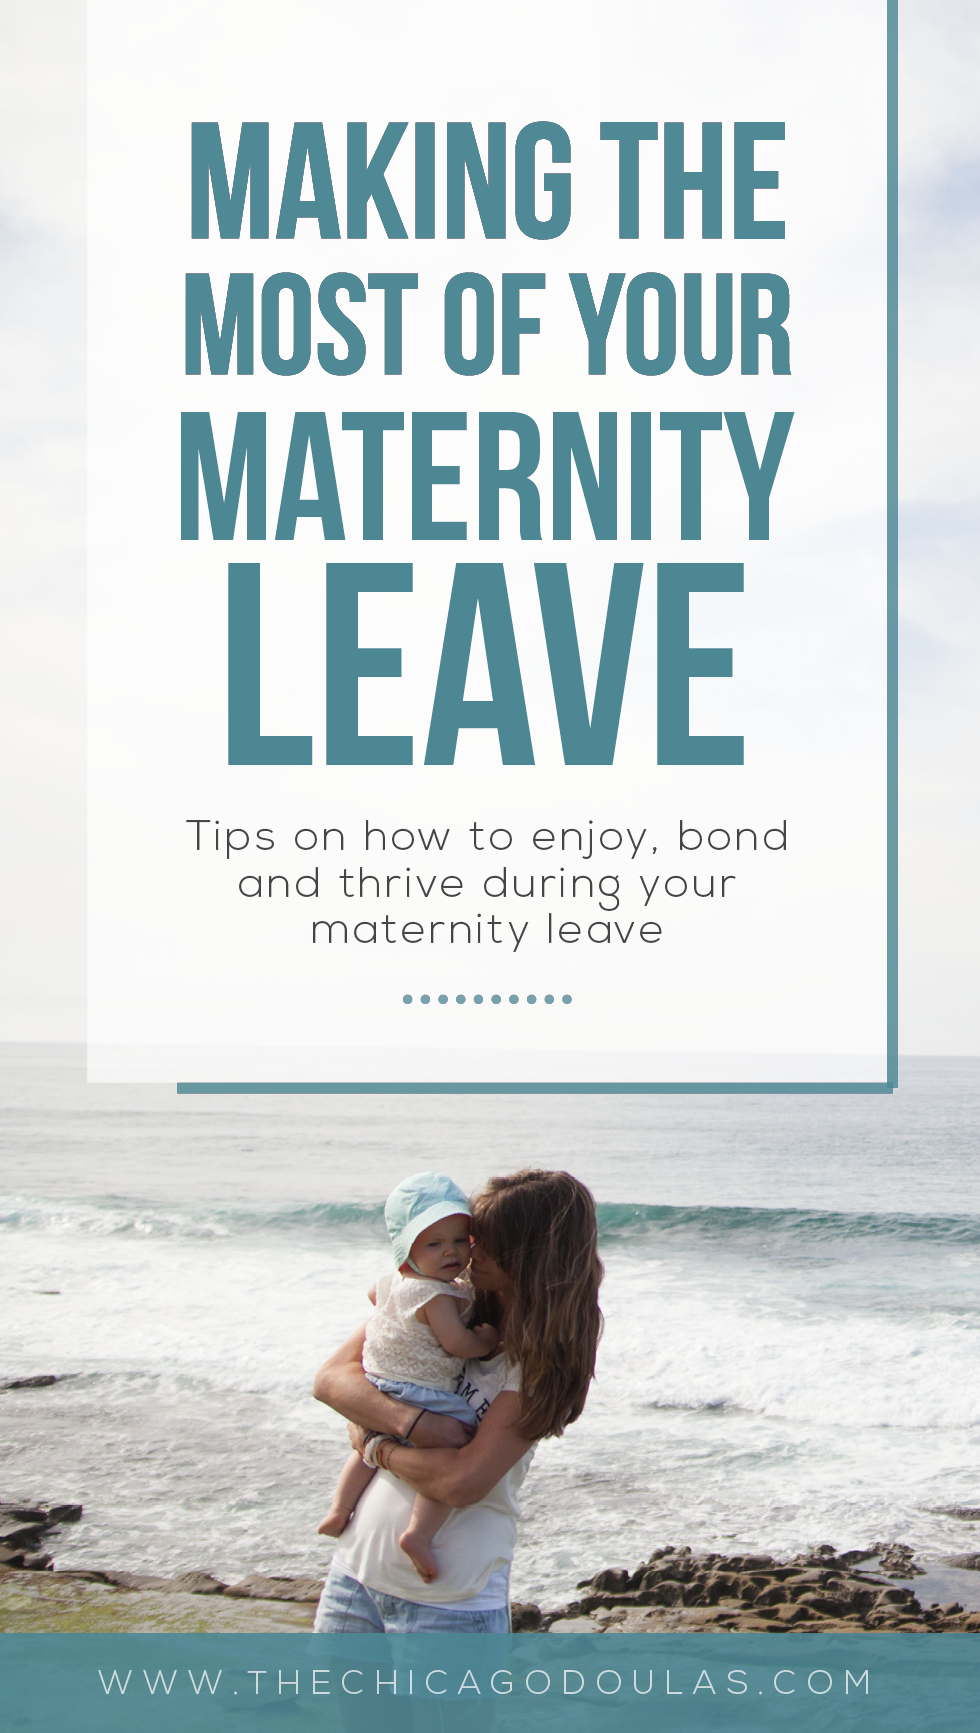 Making the Most of Your Maternity Leave - What You Should Do DUring Maternity Leave - The Chicago Doulas - How to Bond With Baby